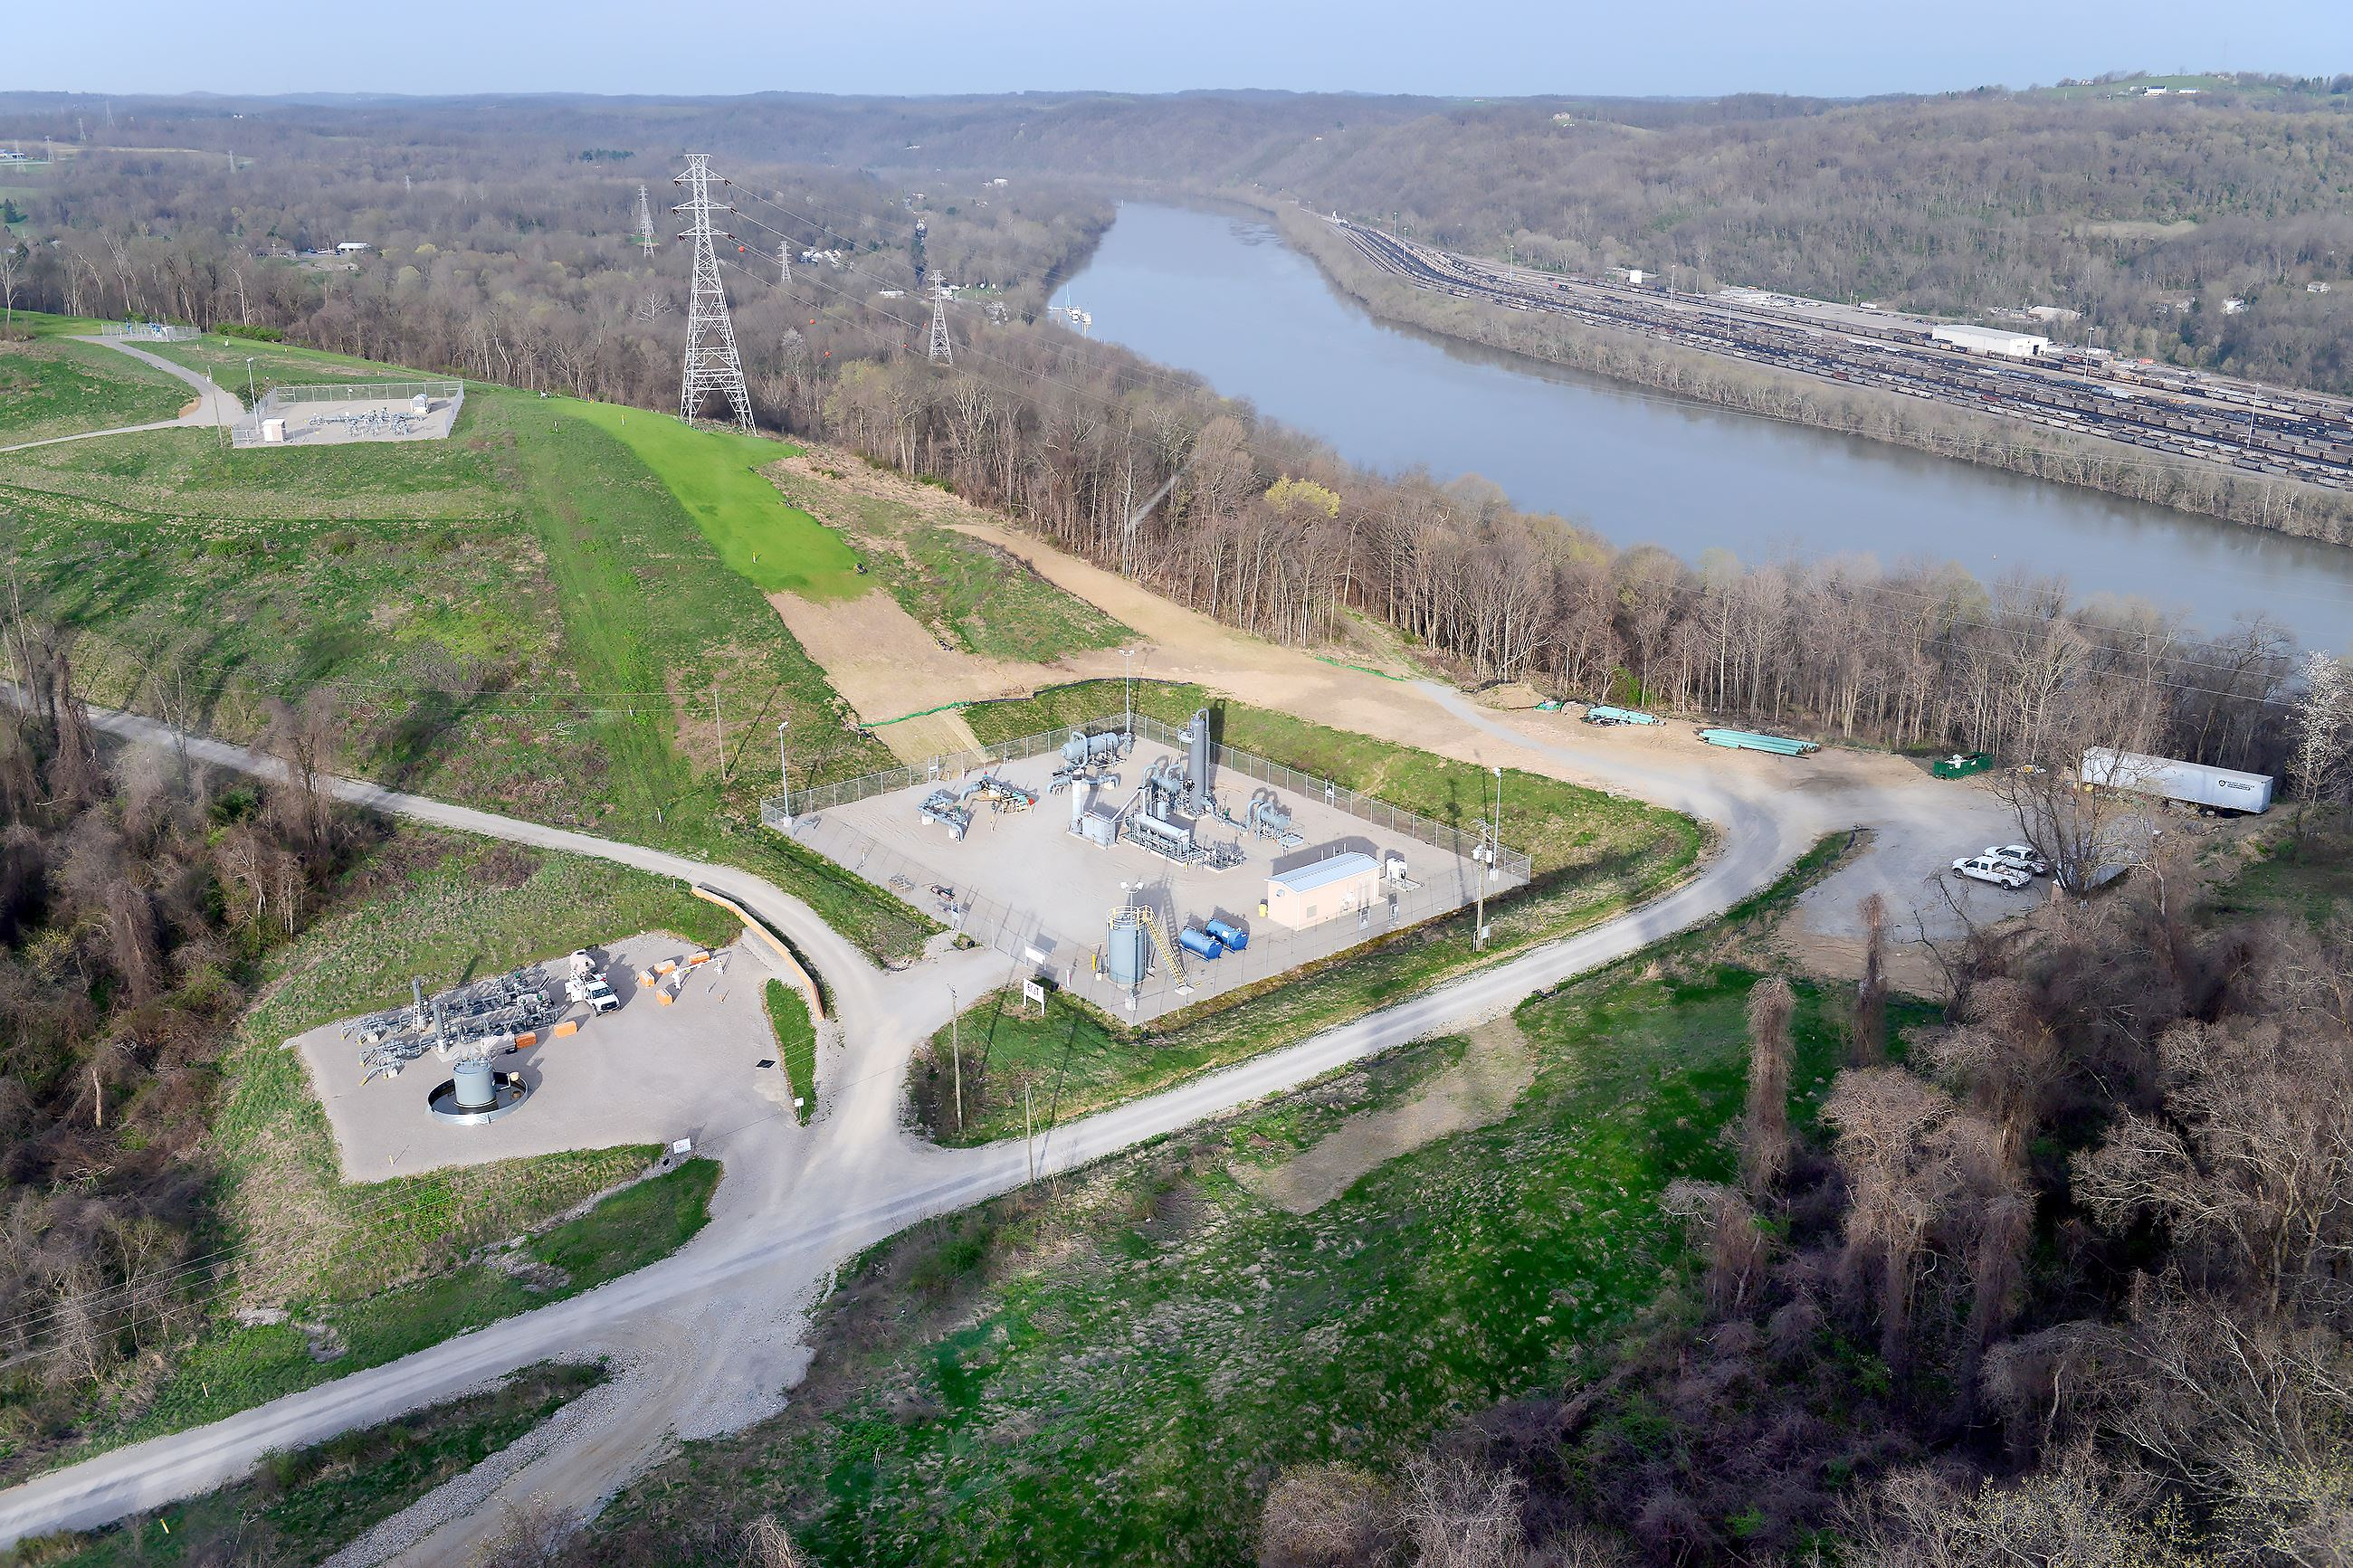 20170411rldLeakDetection12-2 An EQT Corp. natural gas compressor station along the Monongahela River in Forward.